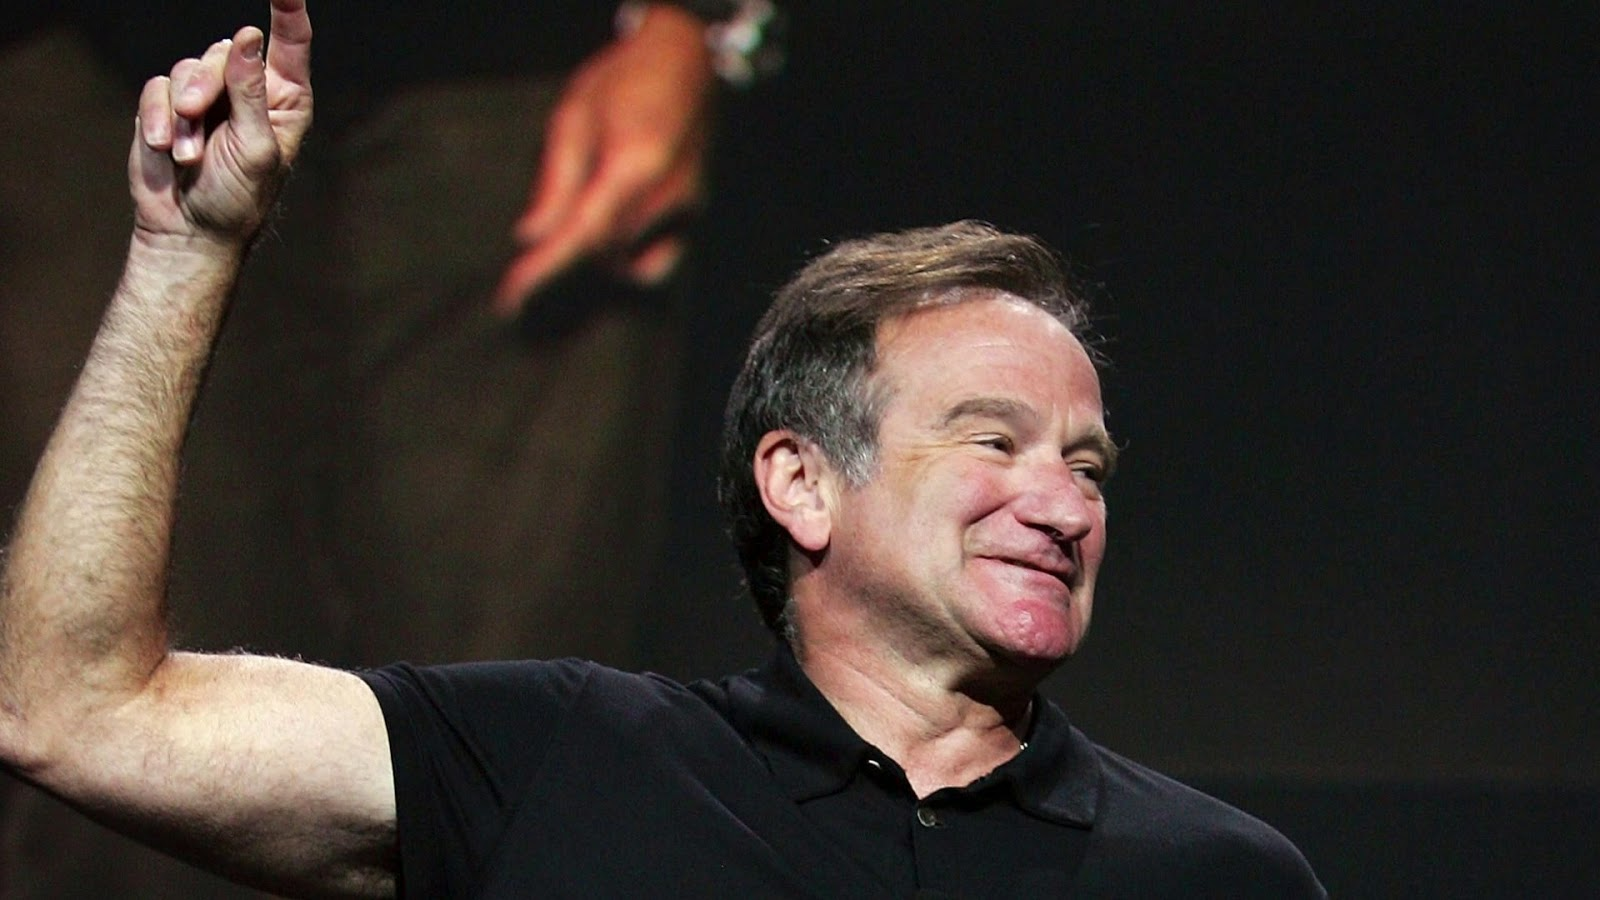 By Ken Levine: My Thoughts On Robin Williams